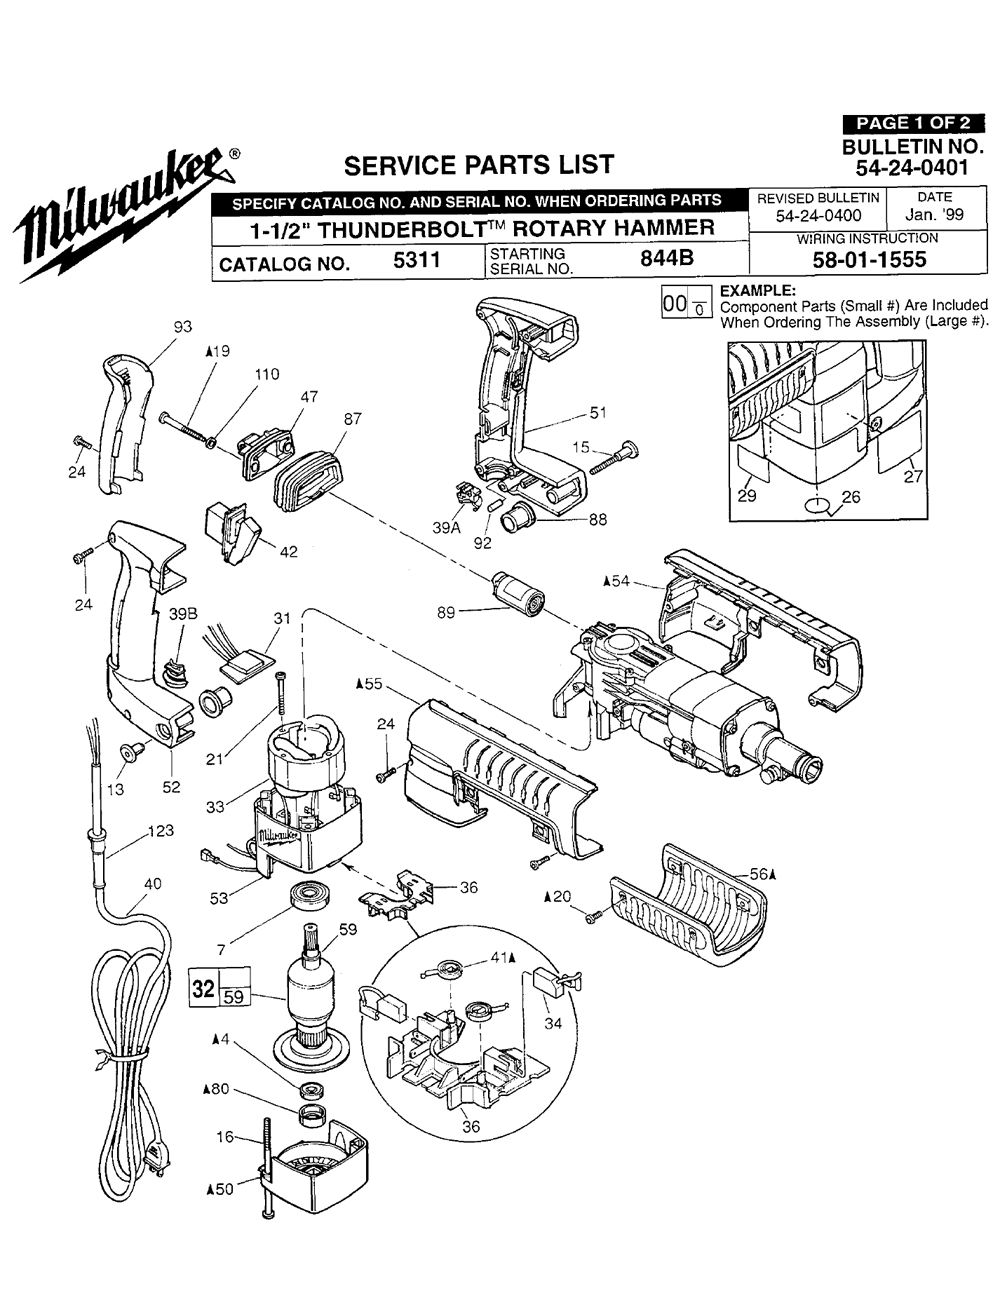 Light wiring diagram without relay on off road engine lights diagram at ww5 ww